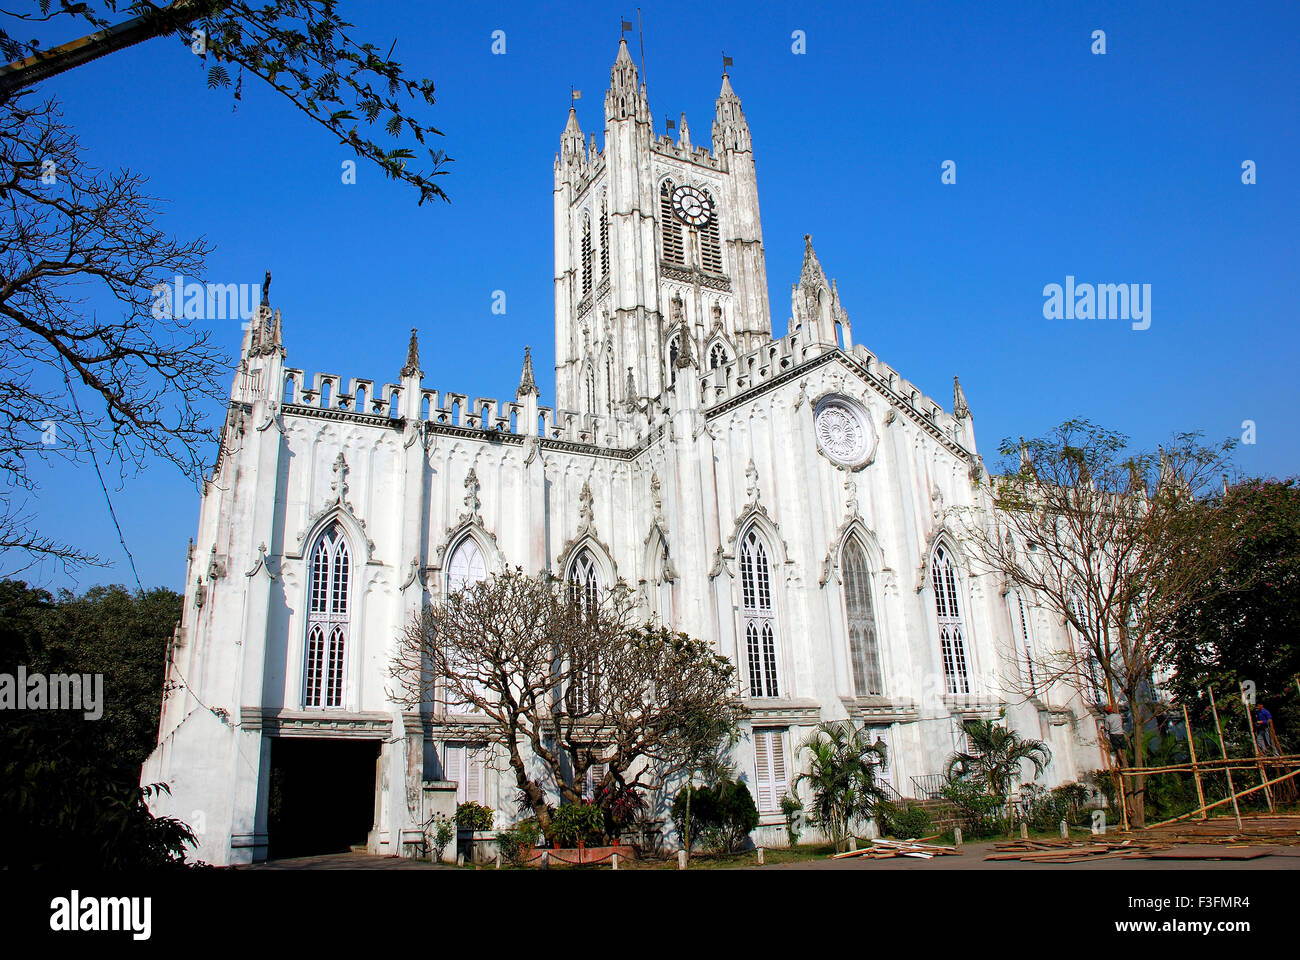 St Paul cathedral ; Calcutta ; West Bengal ; India - Stock Image